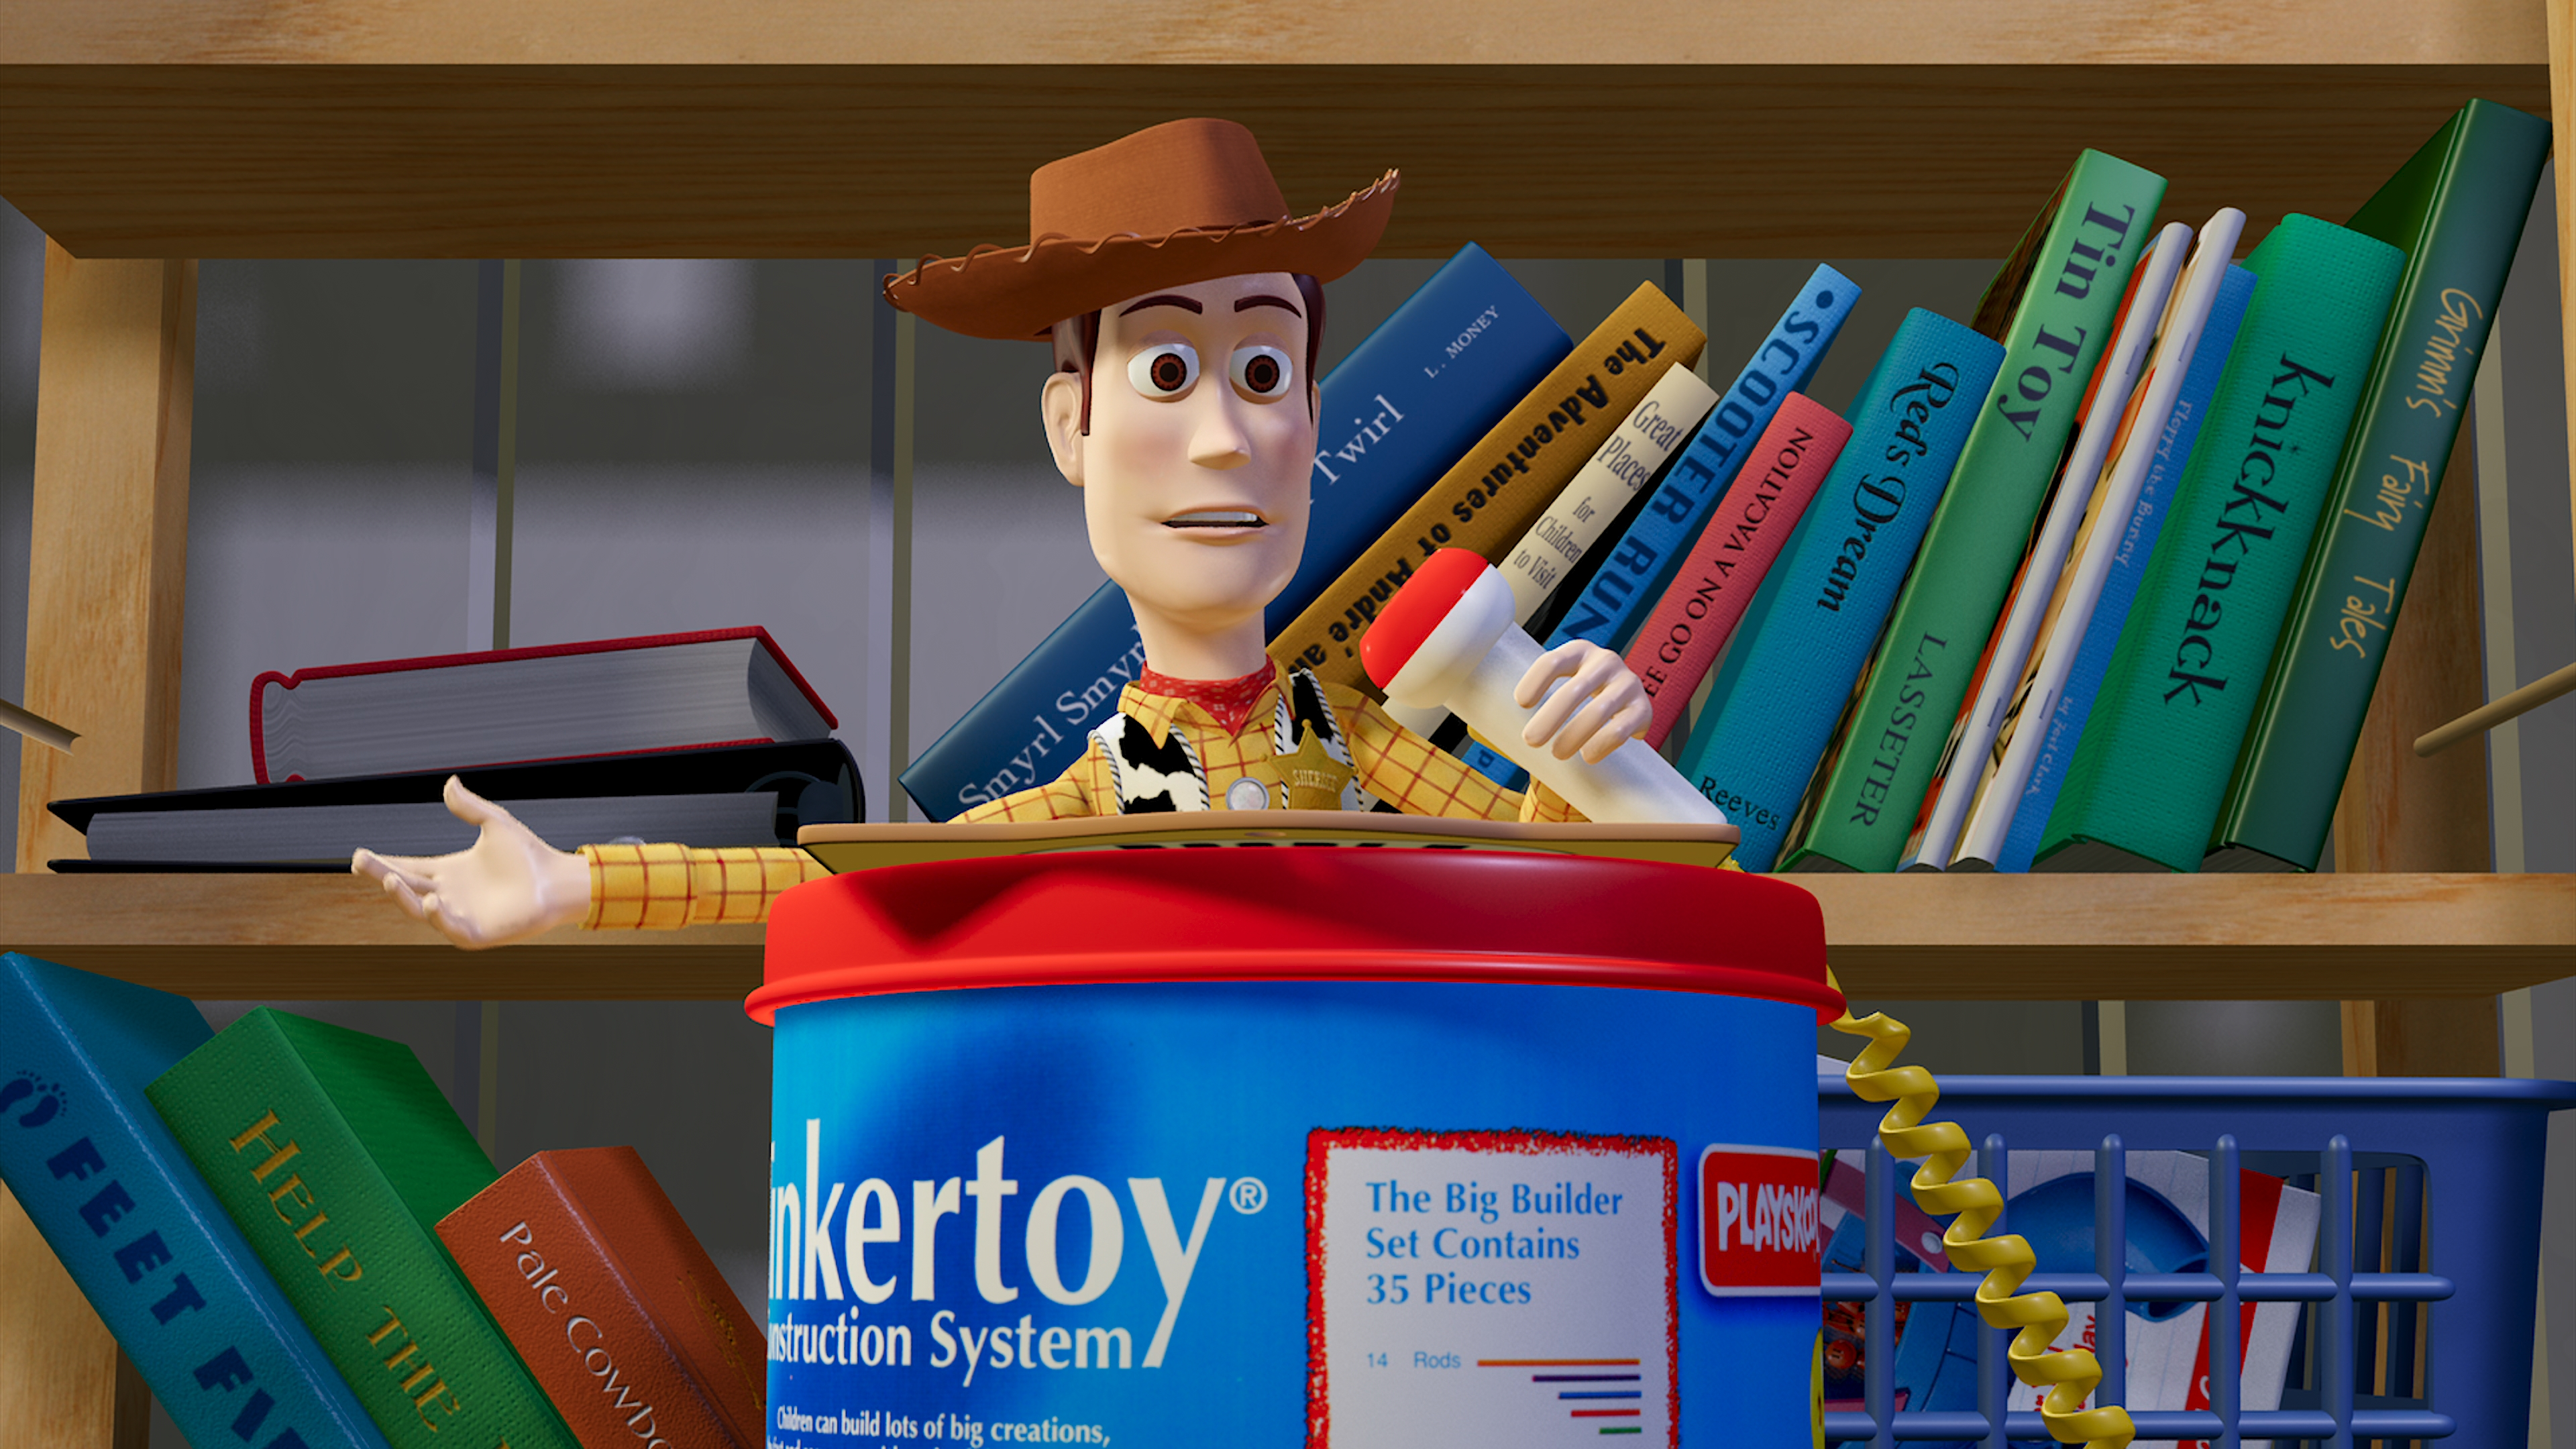 Toy Story - 4K Ultra HD Blu-ray Ultra HD Review | High Def Digest